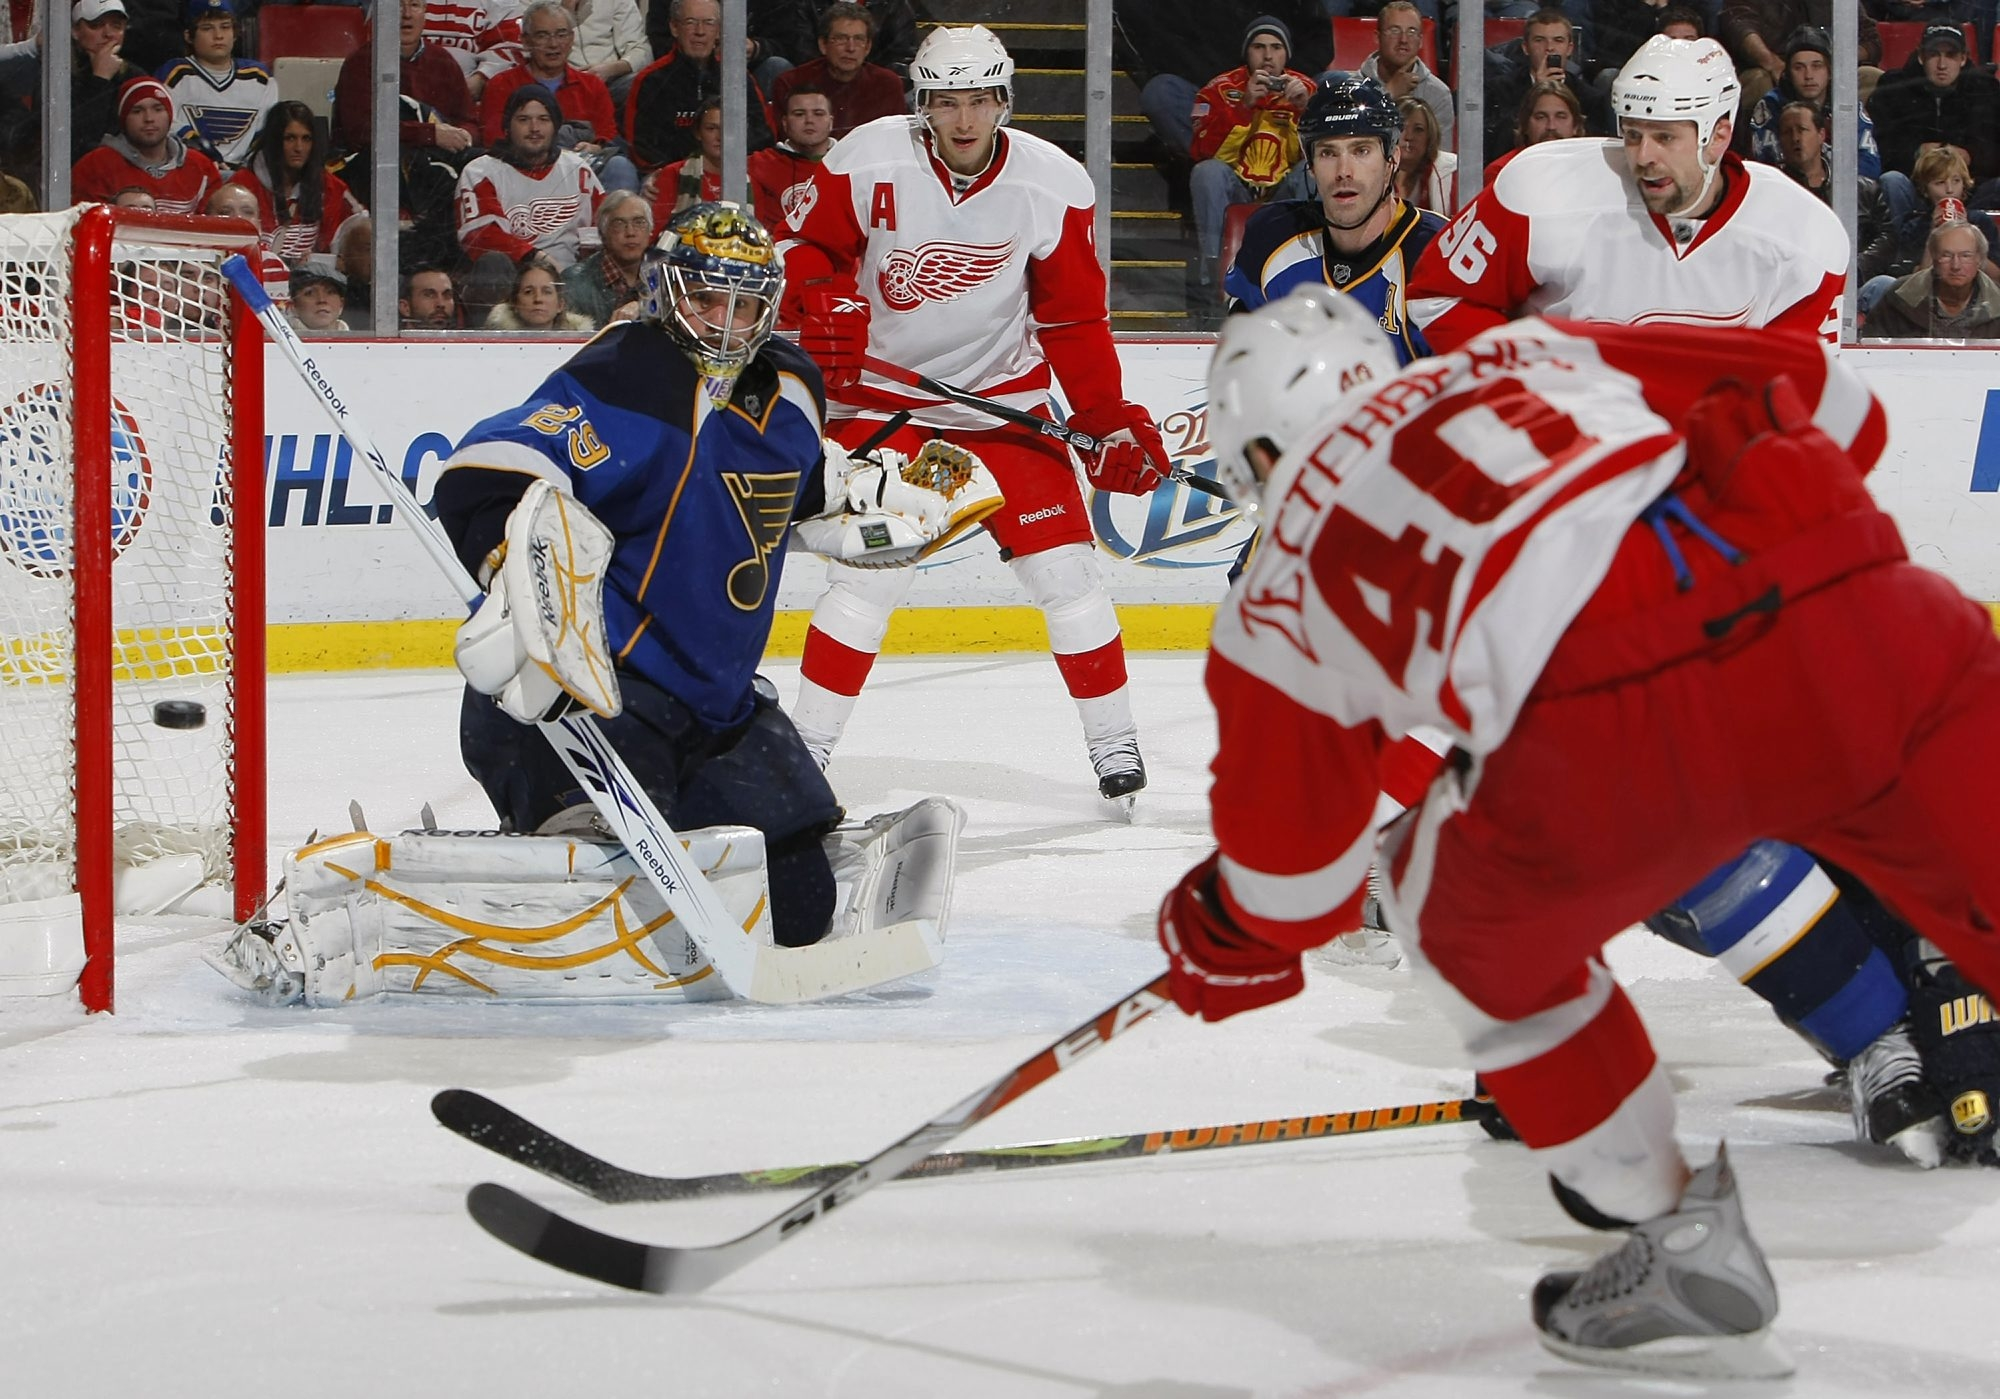 Henrik Zetterberg and his Detroit Red Wings teammates are now in the Atlantic Division with the Sabres under the NHL's realignment plan.